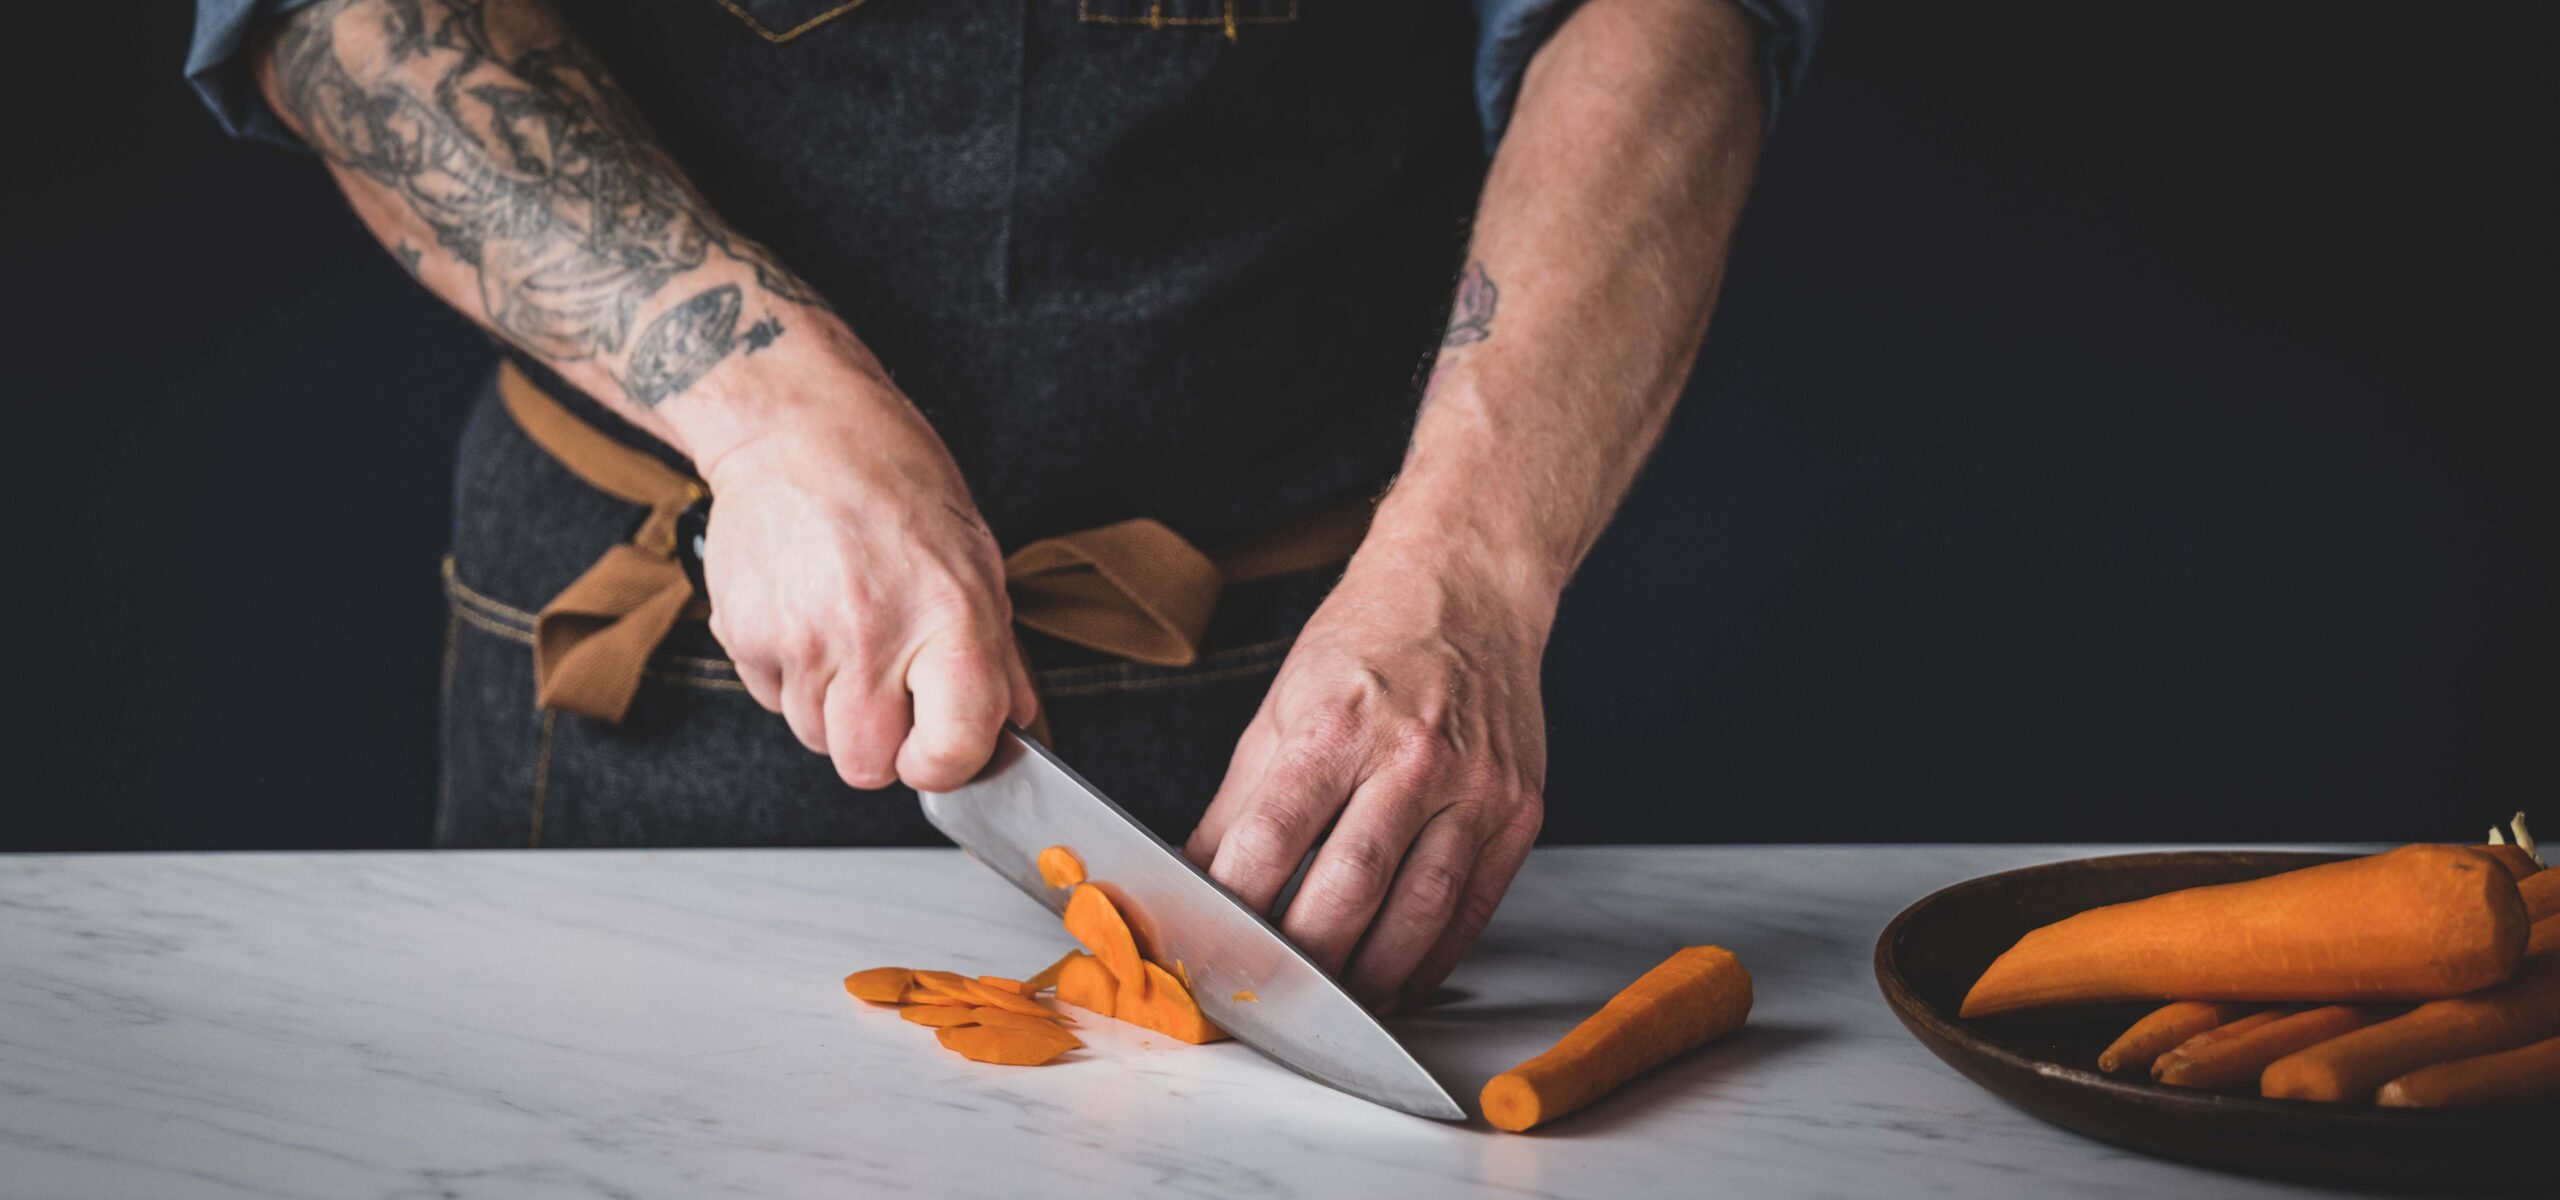 Man with tattooed arms slicing a peeled carrot.